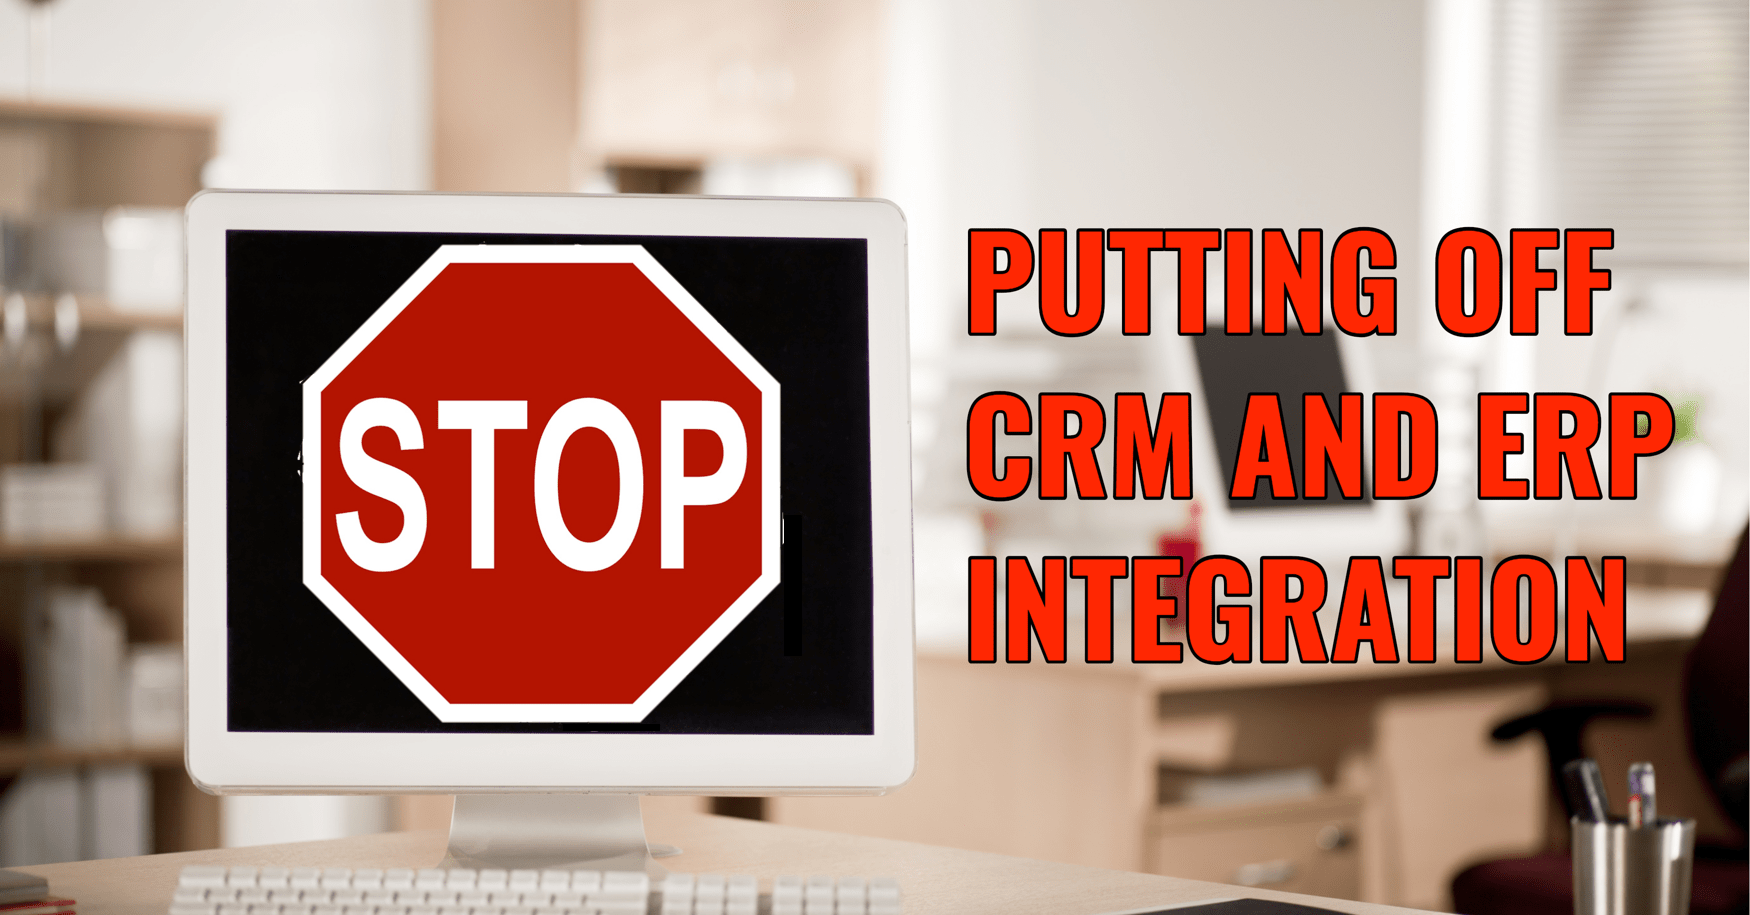 Stop Putting Off CRM and ERP Integration